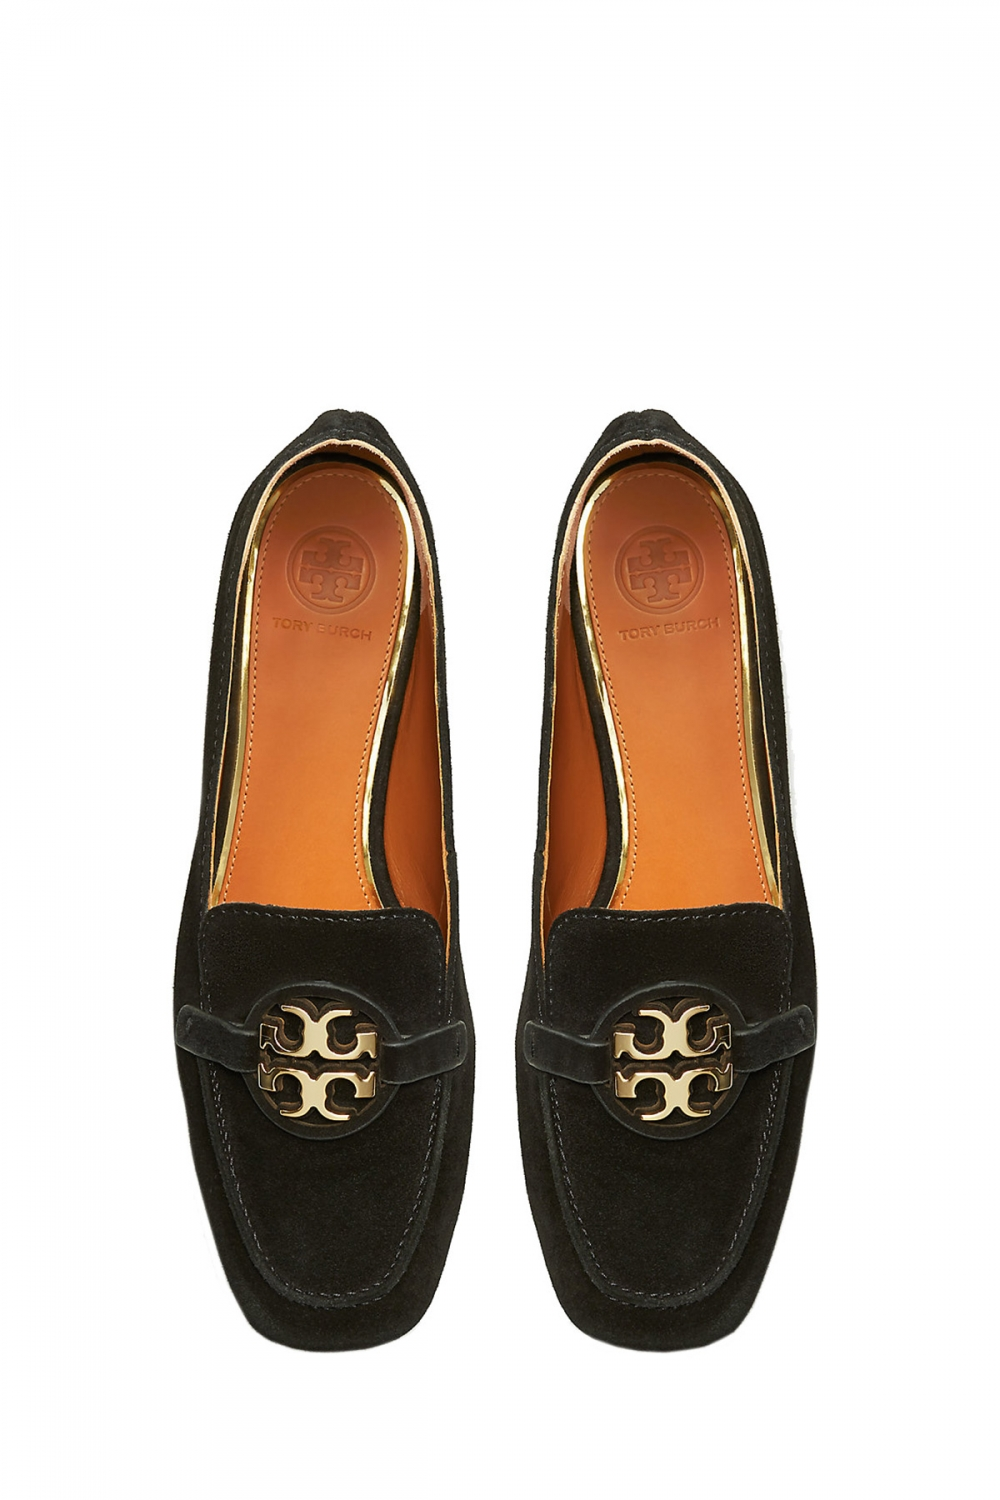 Tory Burch Damen Metal Miller Loafer Schwarz 3